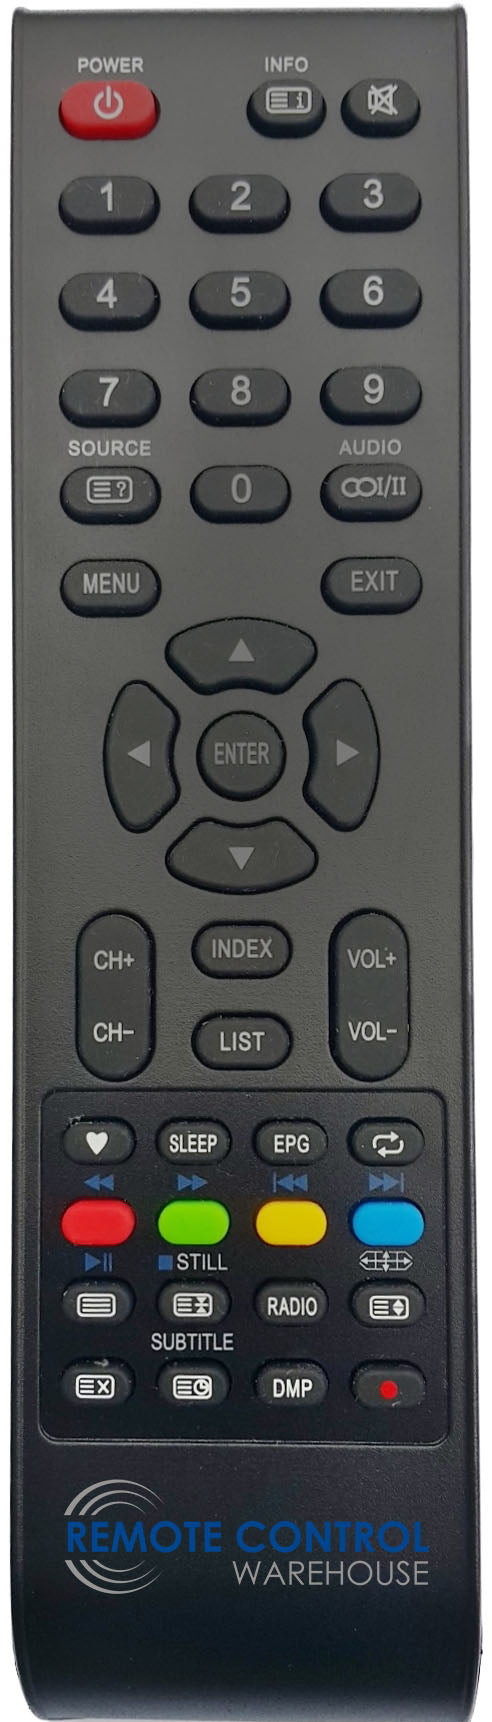 CHANGHONG ORIGINAL REMOTE CONTROL GCBLTV20A-C108 = RL67H-8 LED40D1000 LED TV